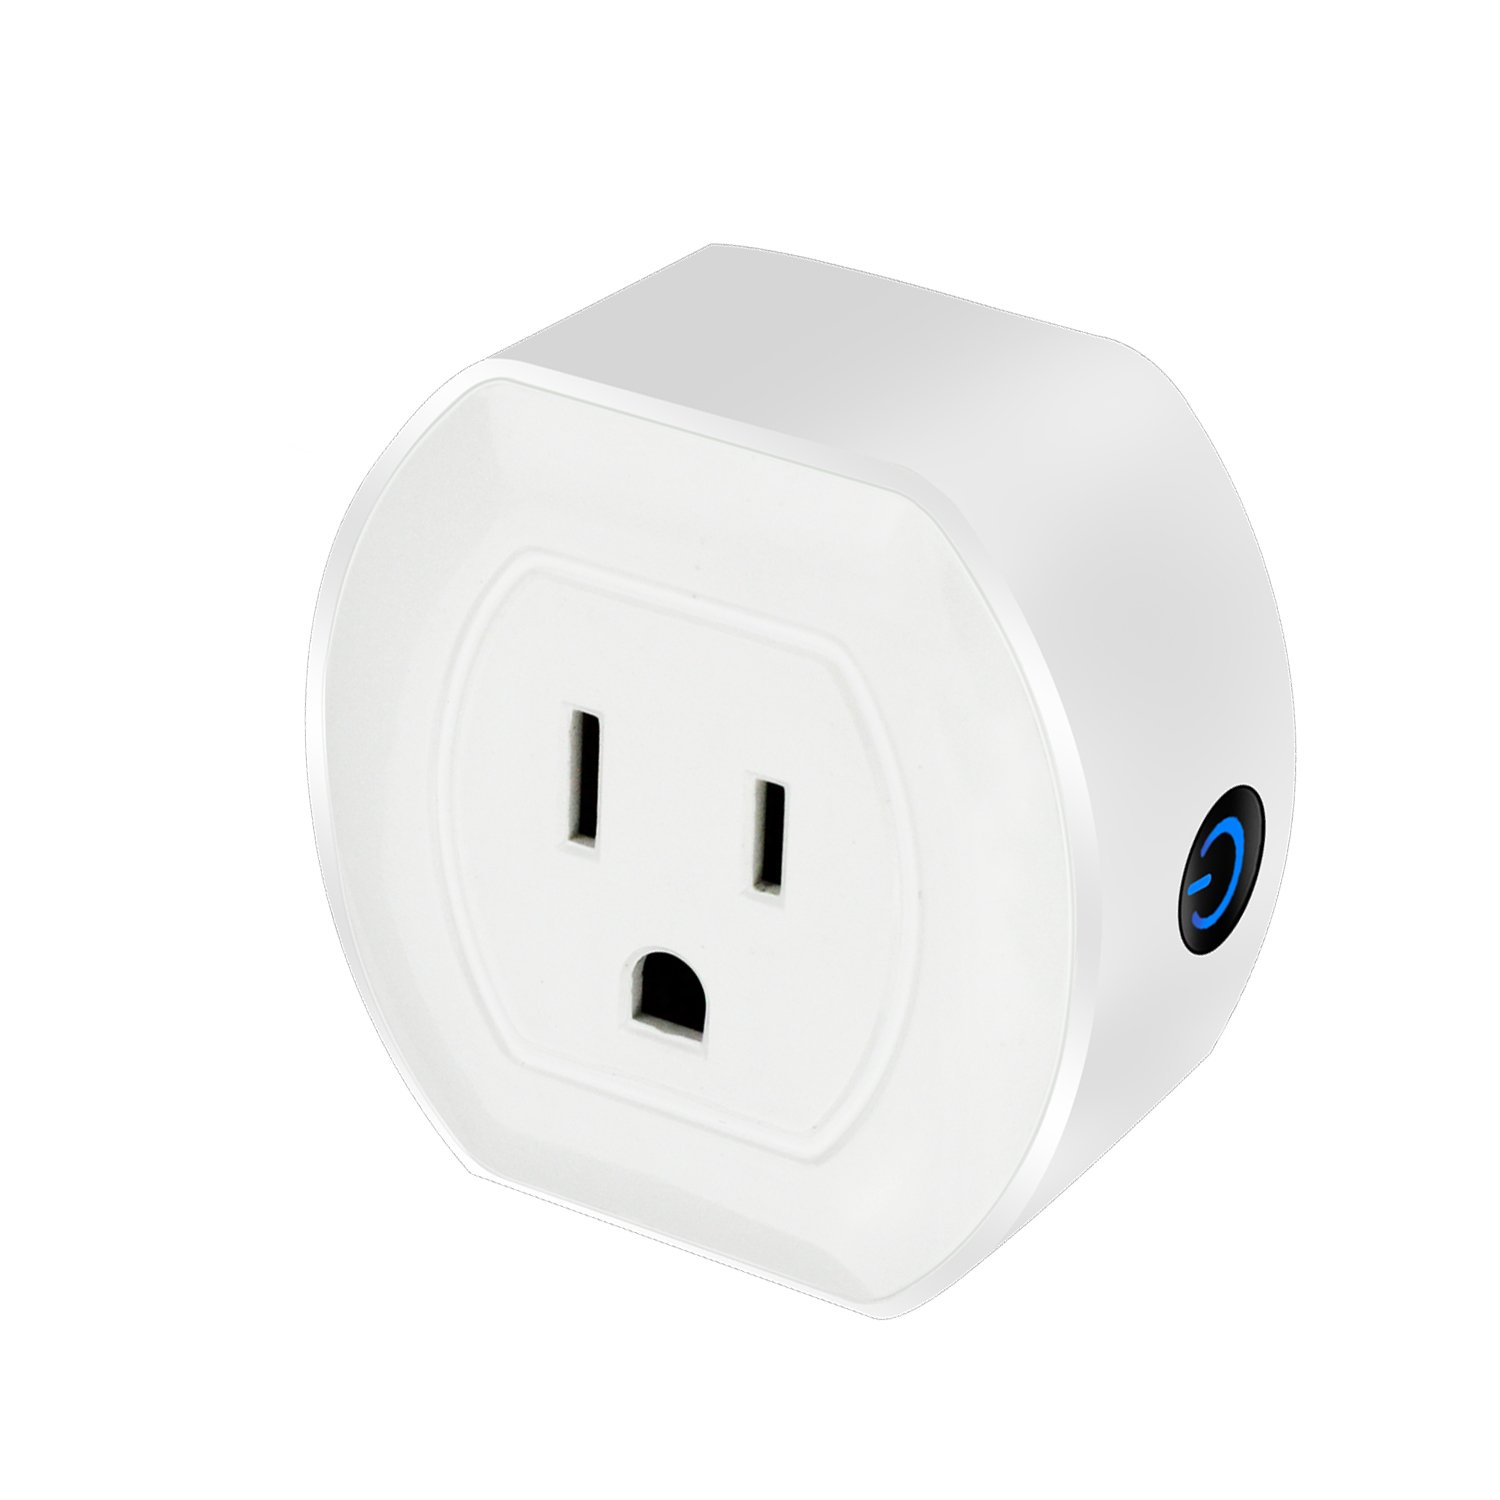 Smart Switch by TMKJ   Smart Outlet Compatible with Alexa, Google Home, IFTTT   White Mini WiFi Smart Plug   Smart Home Devices For Voice Control   No Hub Required (1Pack)